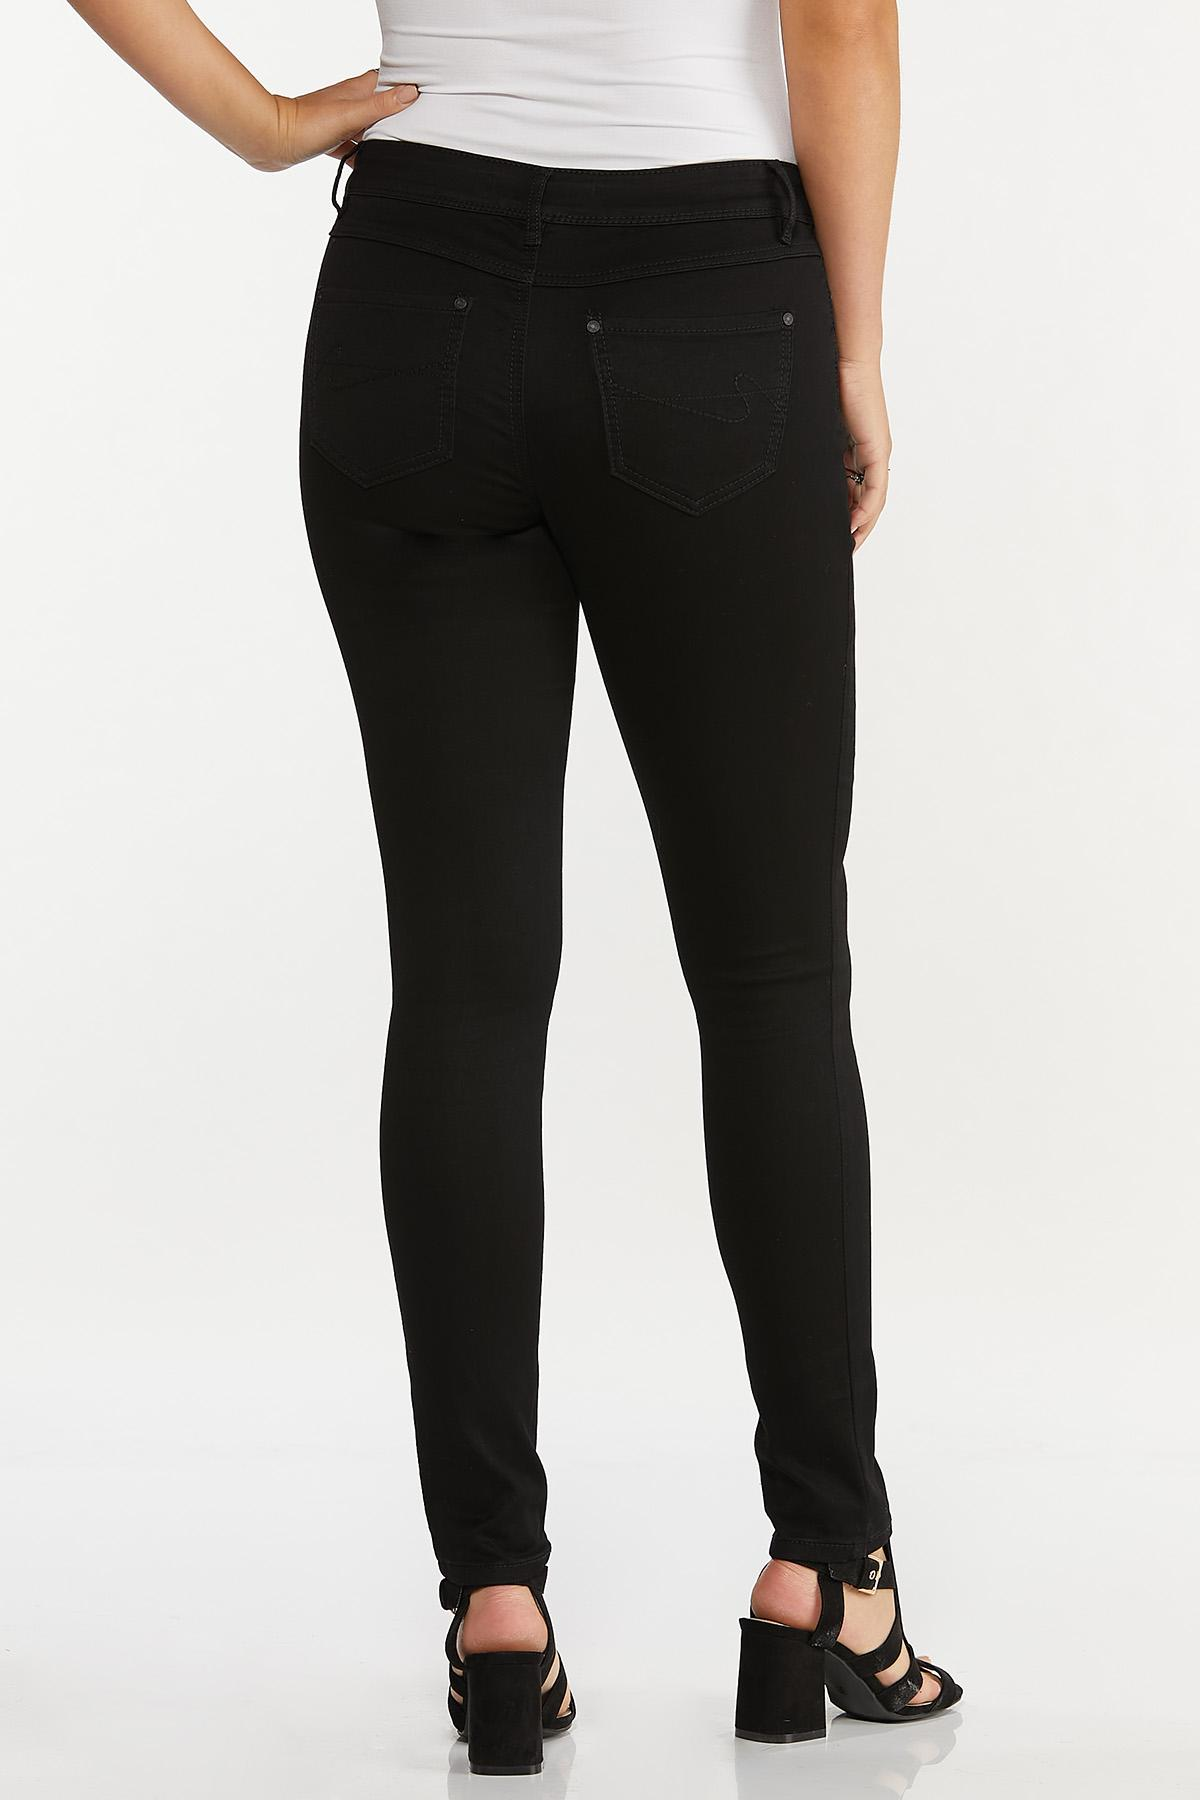 Black Jeggings (Item #37406873)